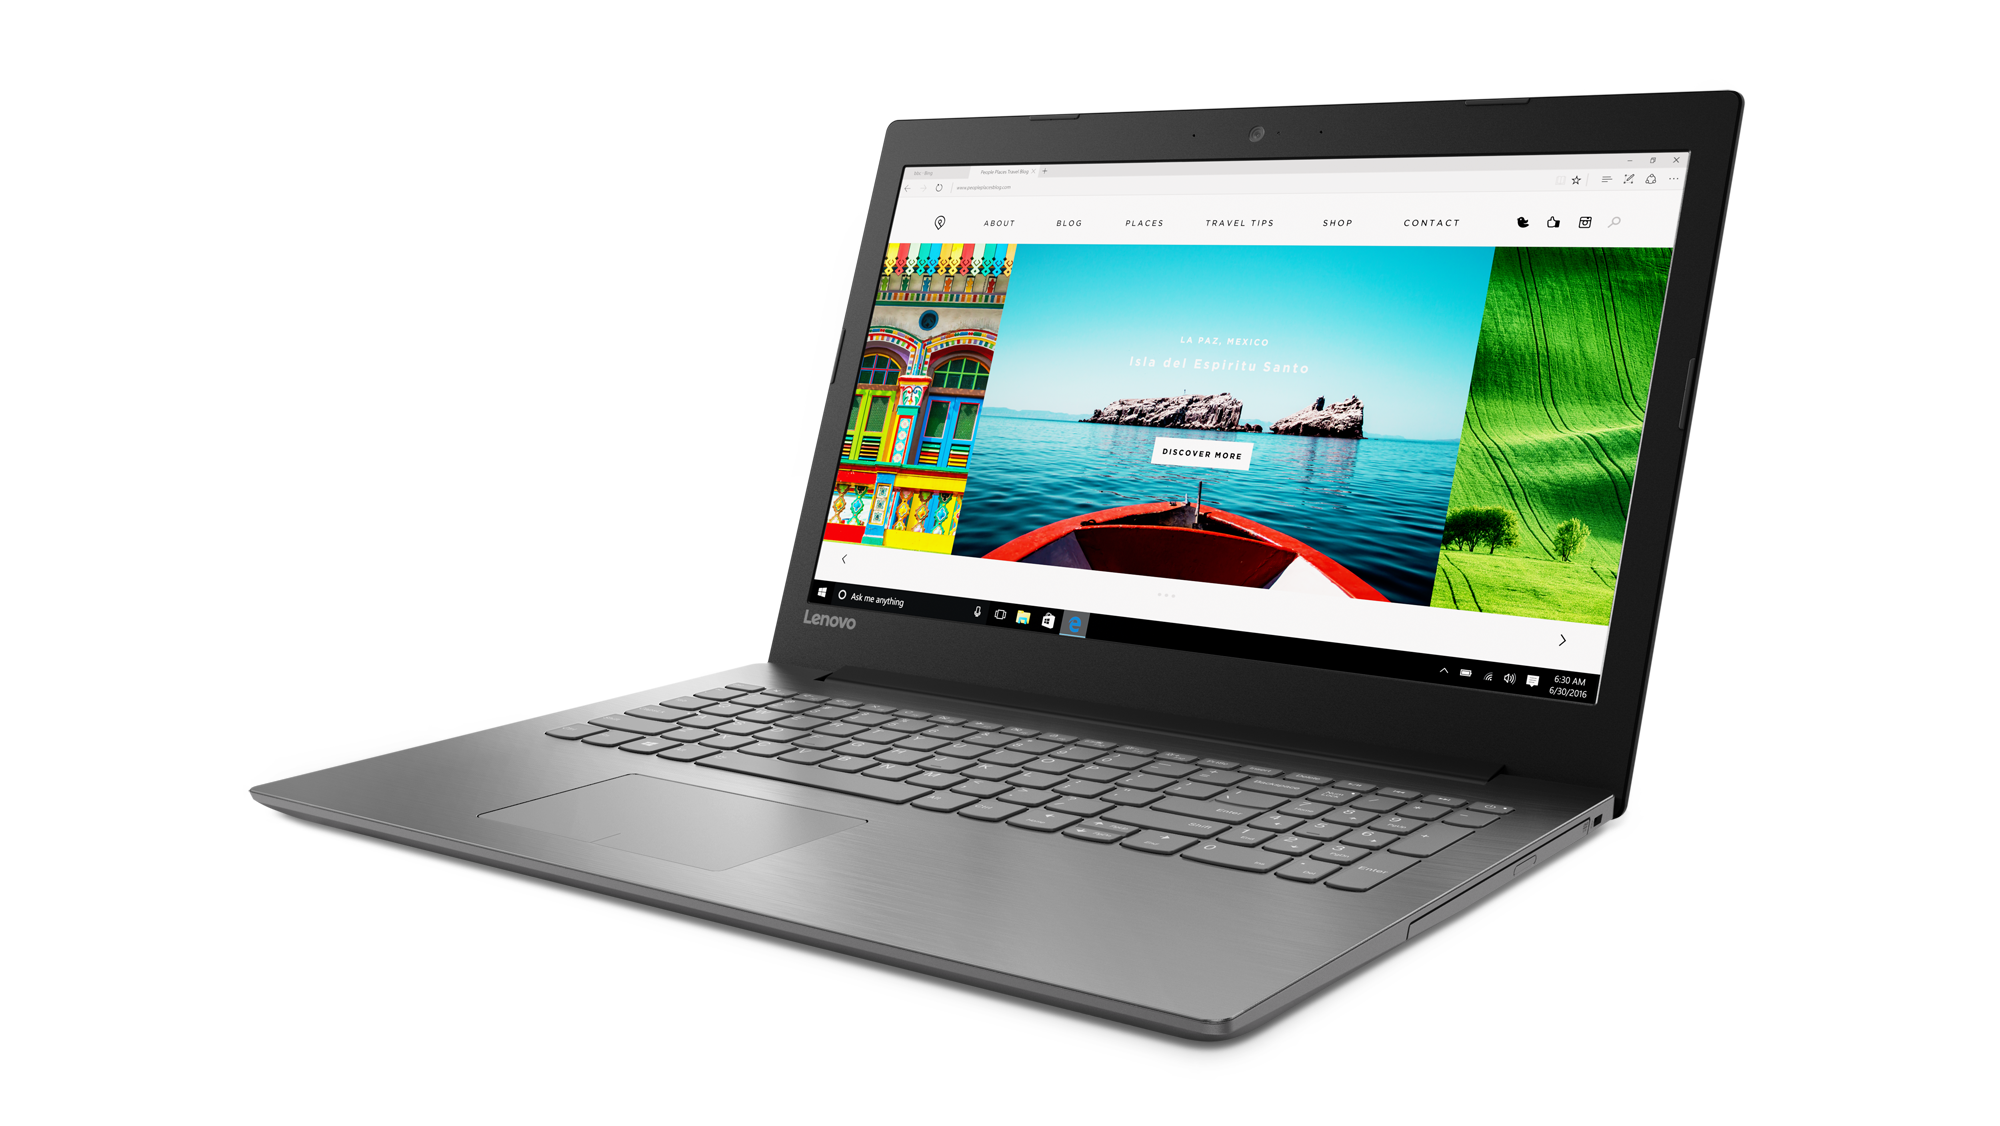 "Lenovo IdeaPad 320-15ISK i3-6006U 3,10GHz/6GB/HDD 1TB/15,6"" FHD/AG/GeForce 2GB/WIN10 černá 80XH003QCK"